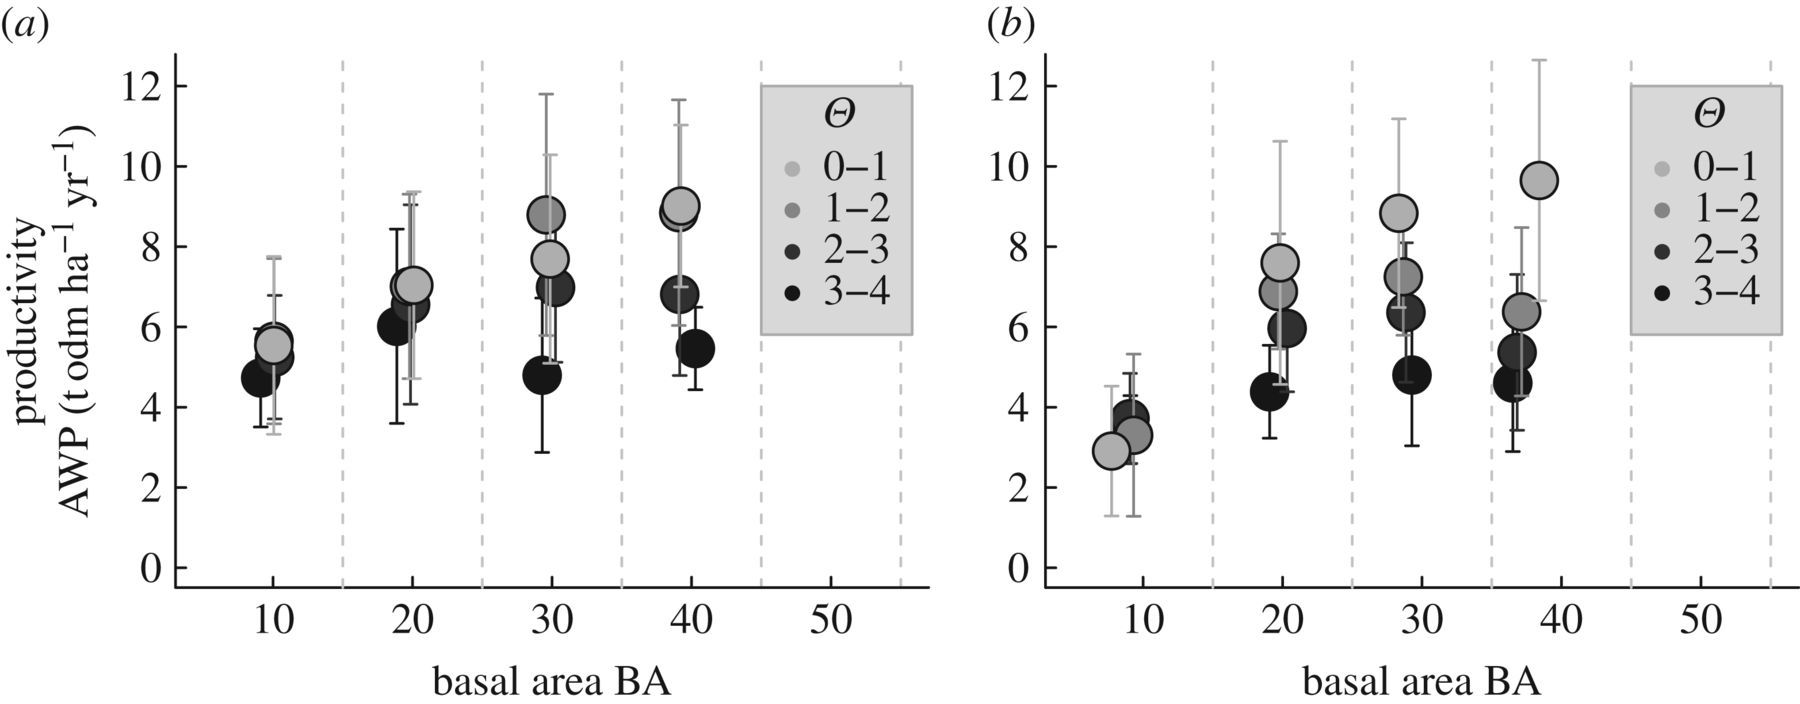 The importance of forest structure to biodiversity